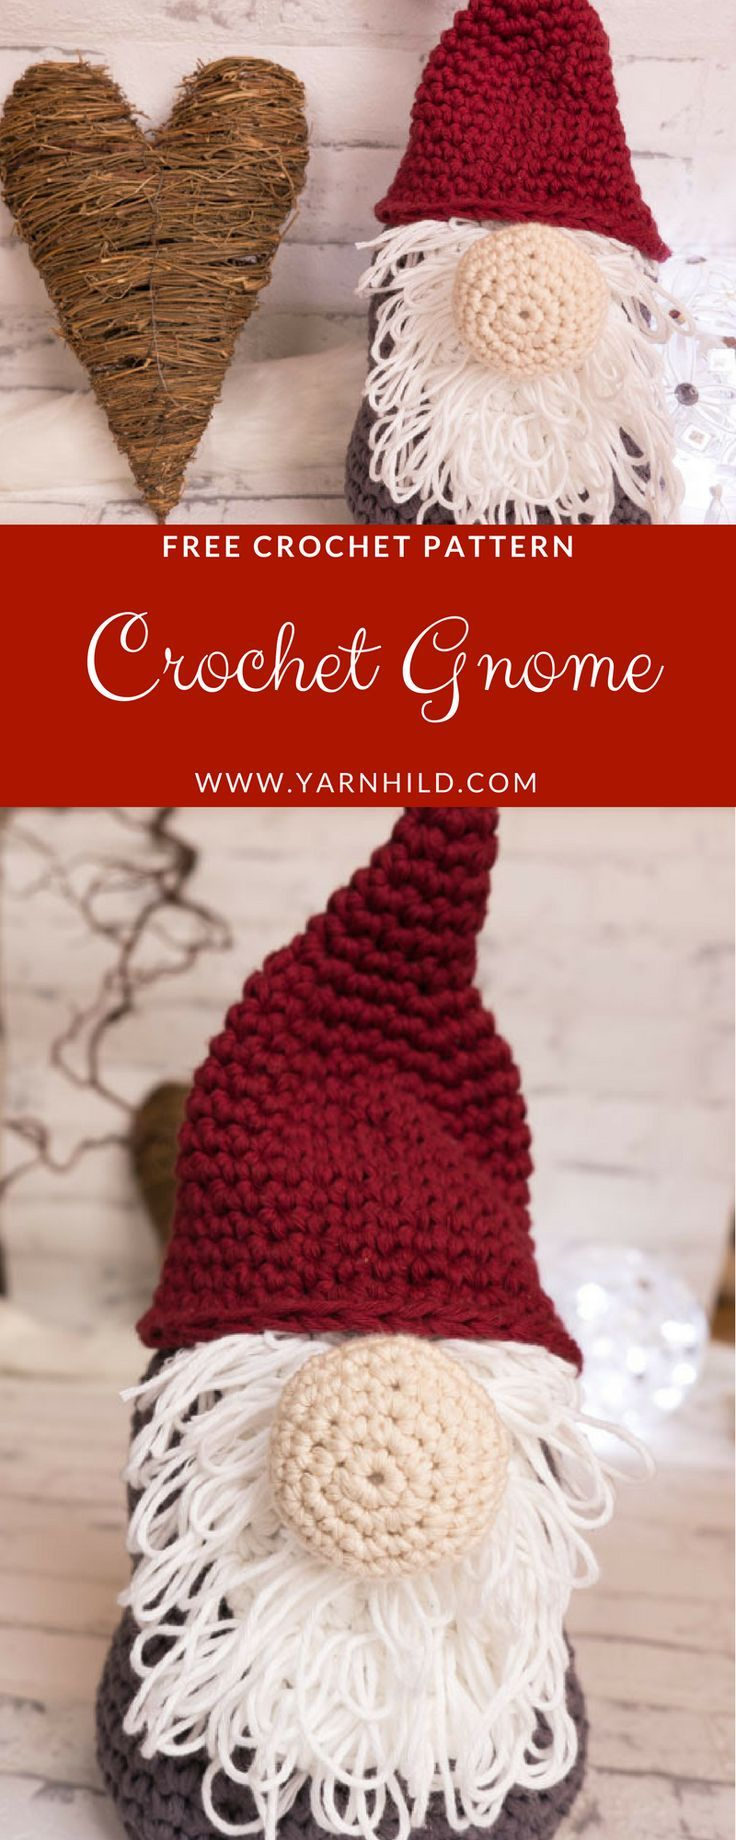 394 best crochet christmas santa images on pinterest caramel crochet christmas gnome free crochet pattern at yarnhild pattern in norwegian and bankloansurffo Image collections